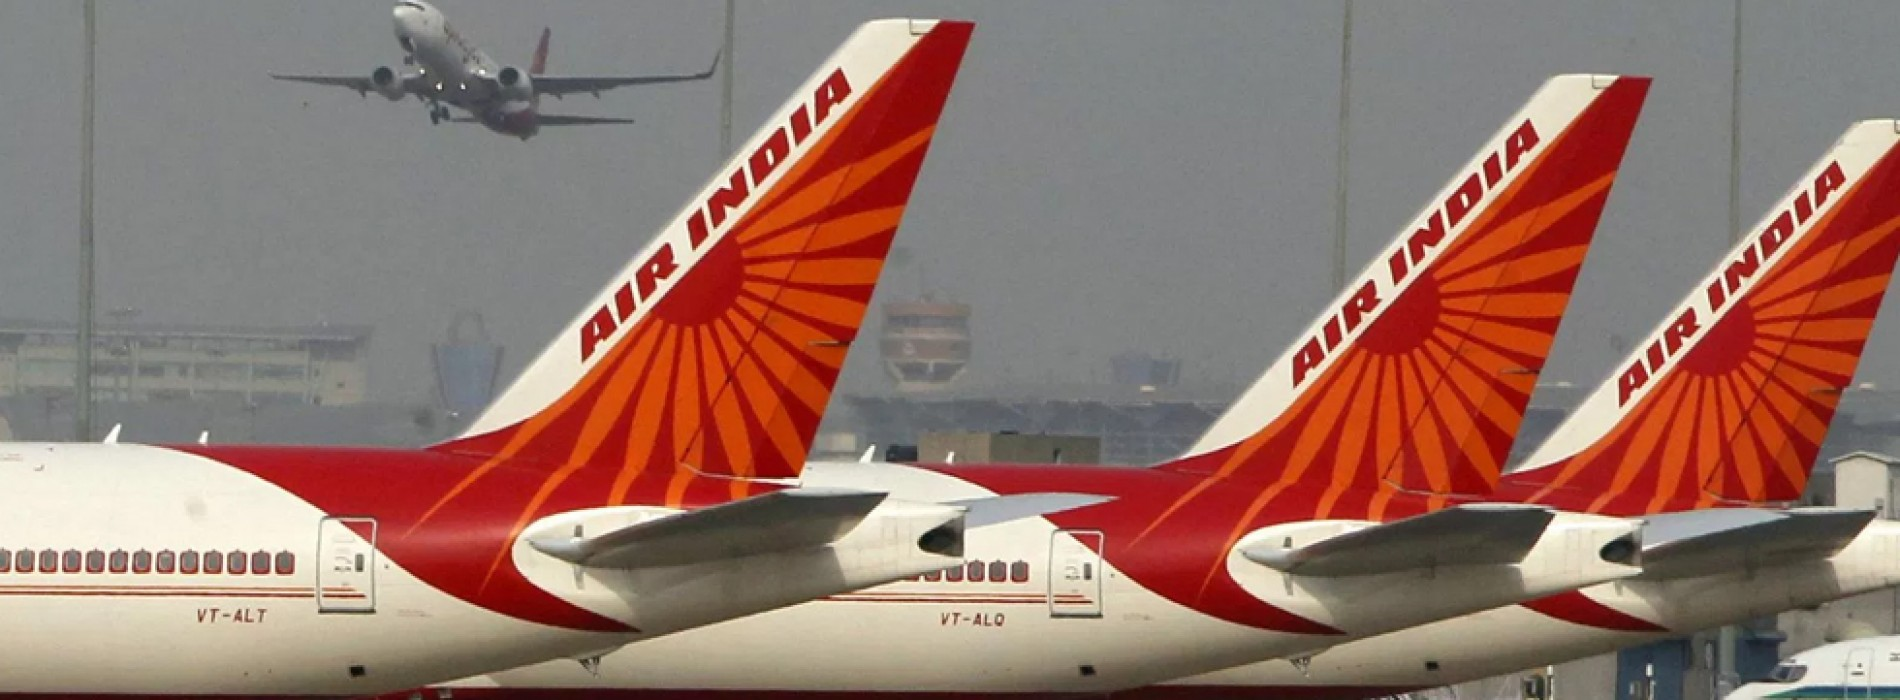 Air India sale: Govt invites bids to appoint banks and lawyers to oversee disinvestment